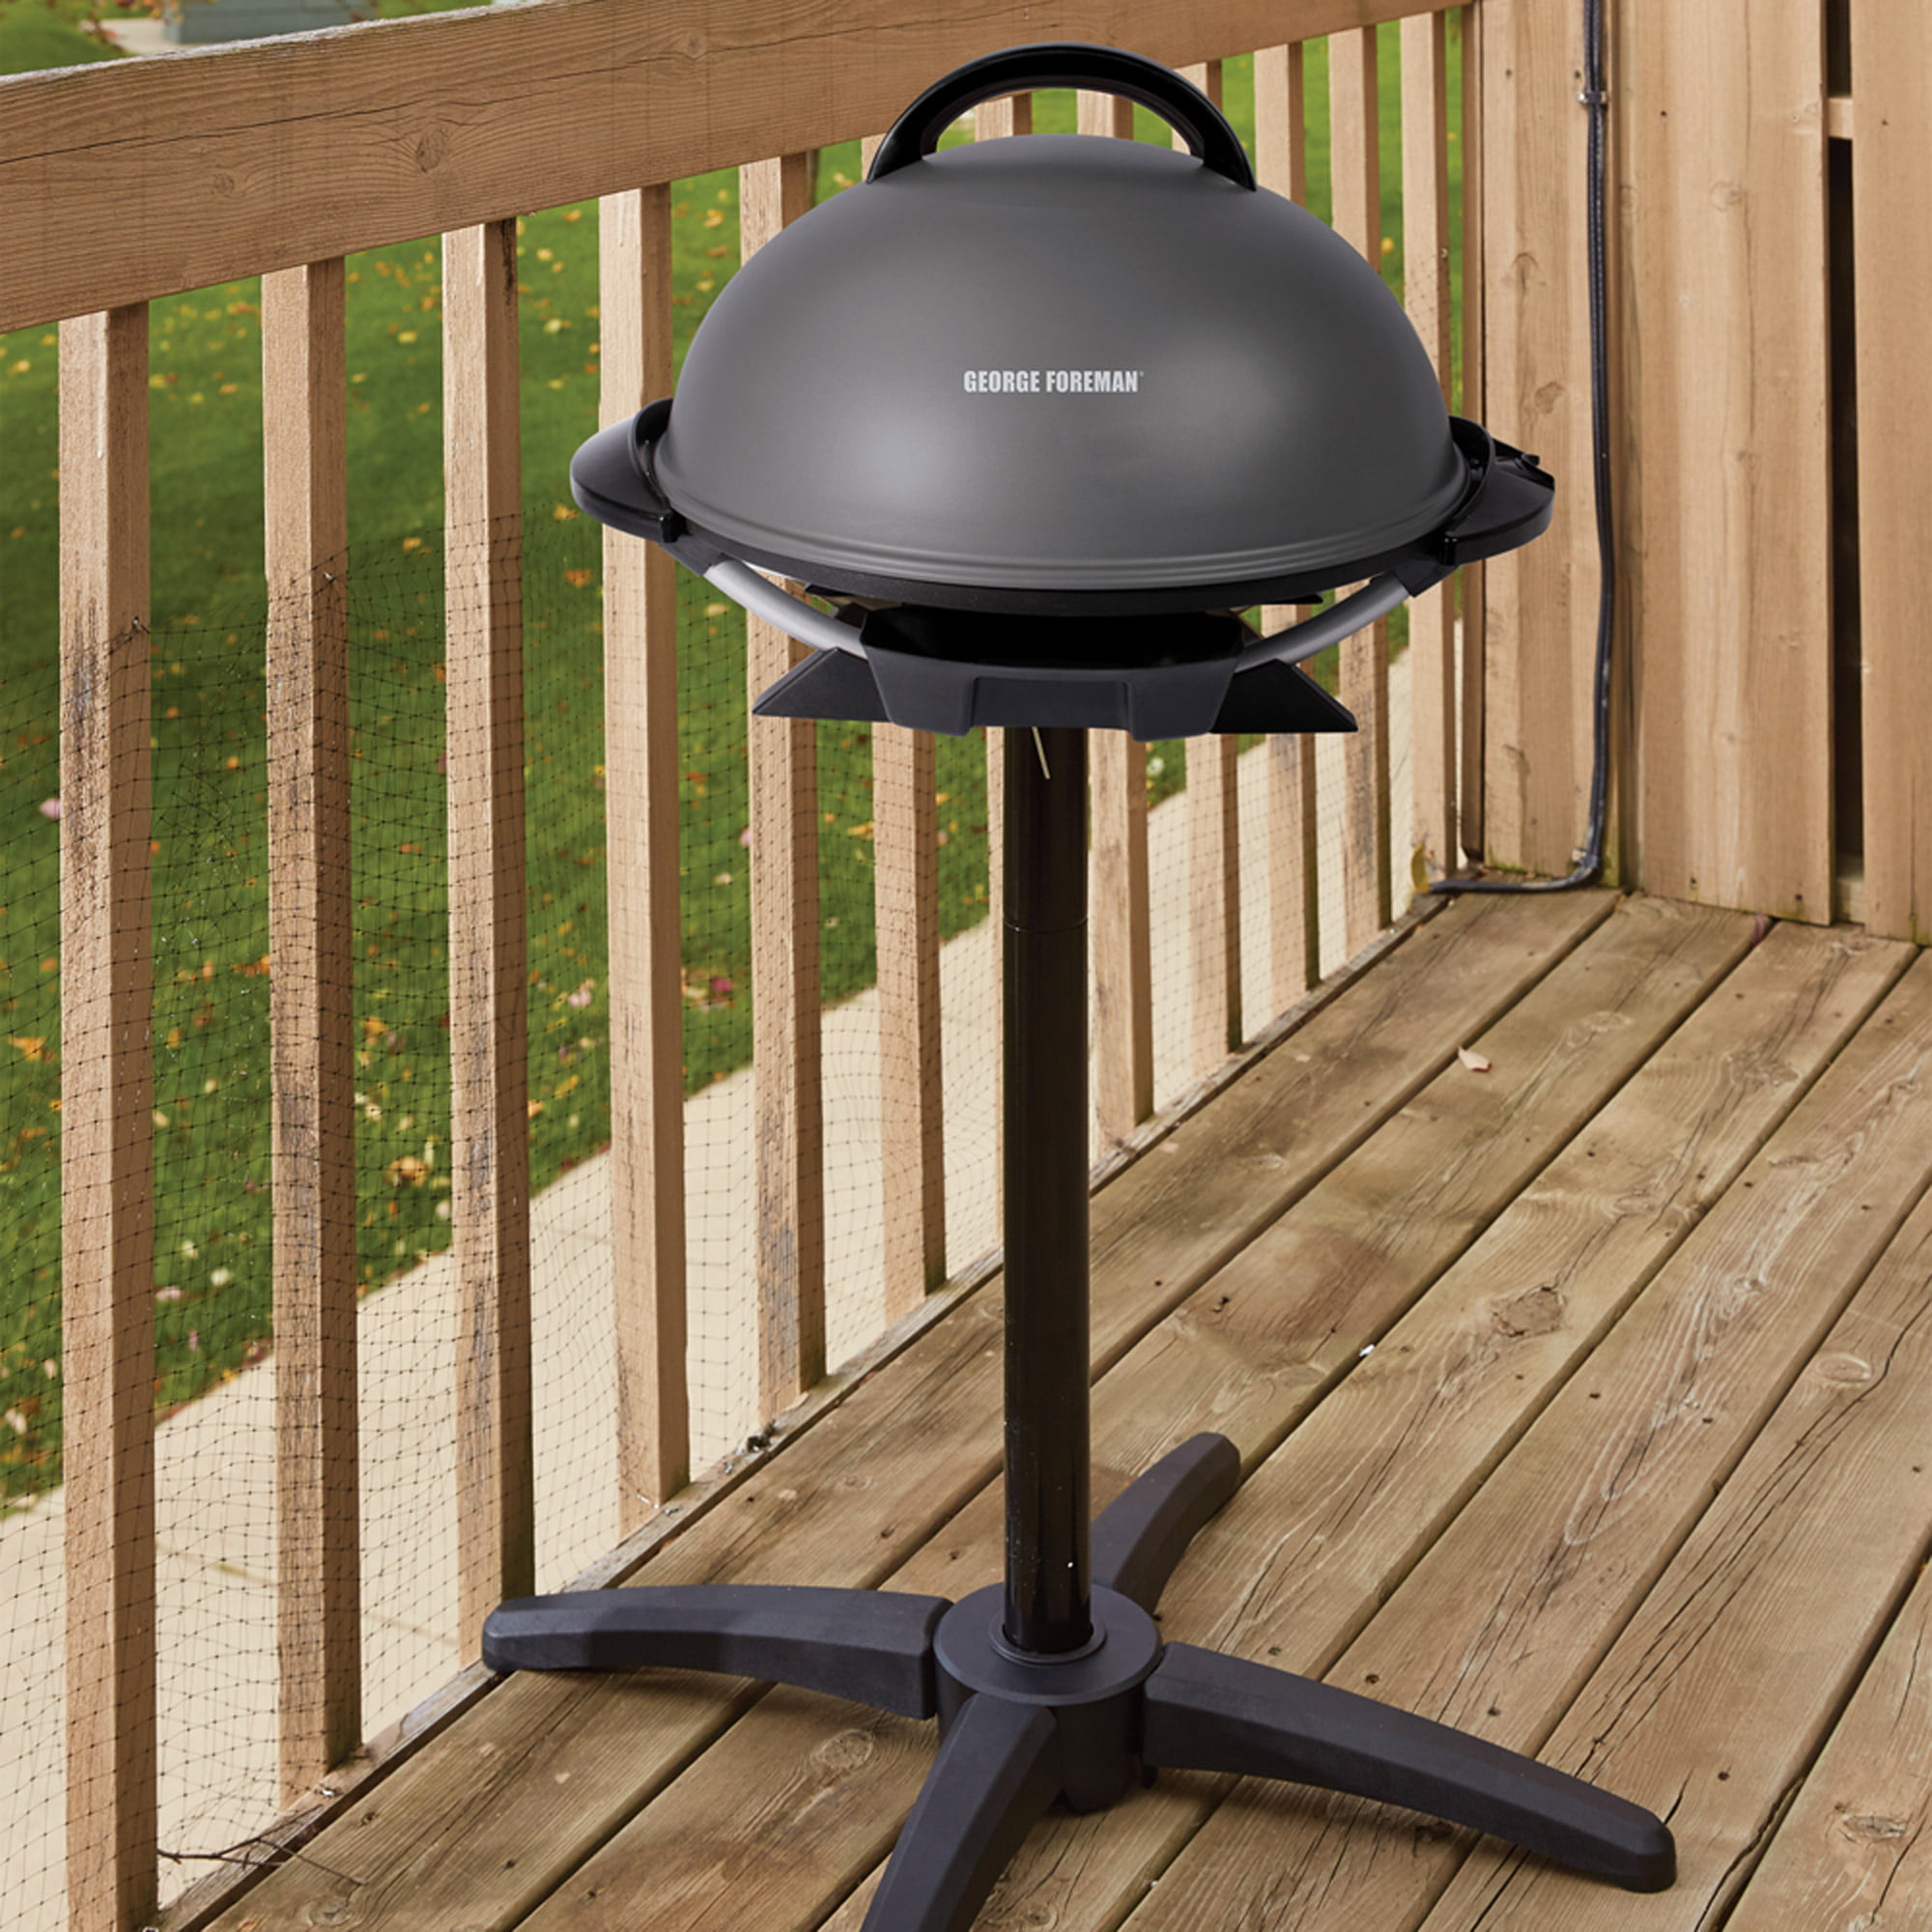 Walmart Electric Grills Outdoor ~ George foreman quot indoor outdoor electric grill non